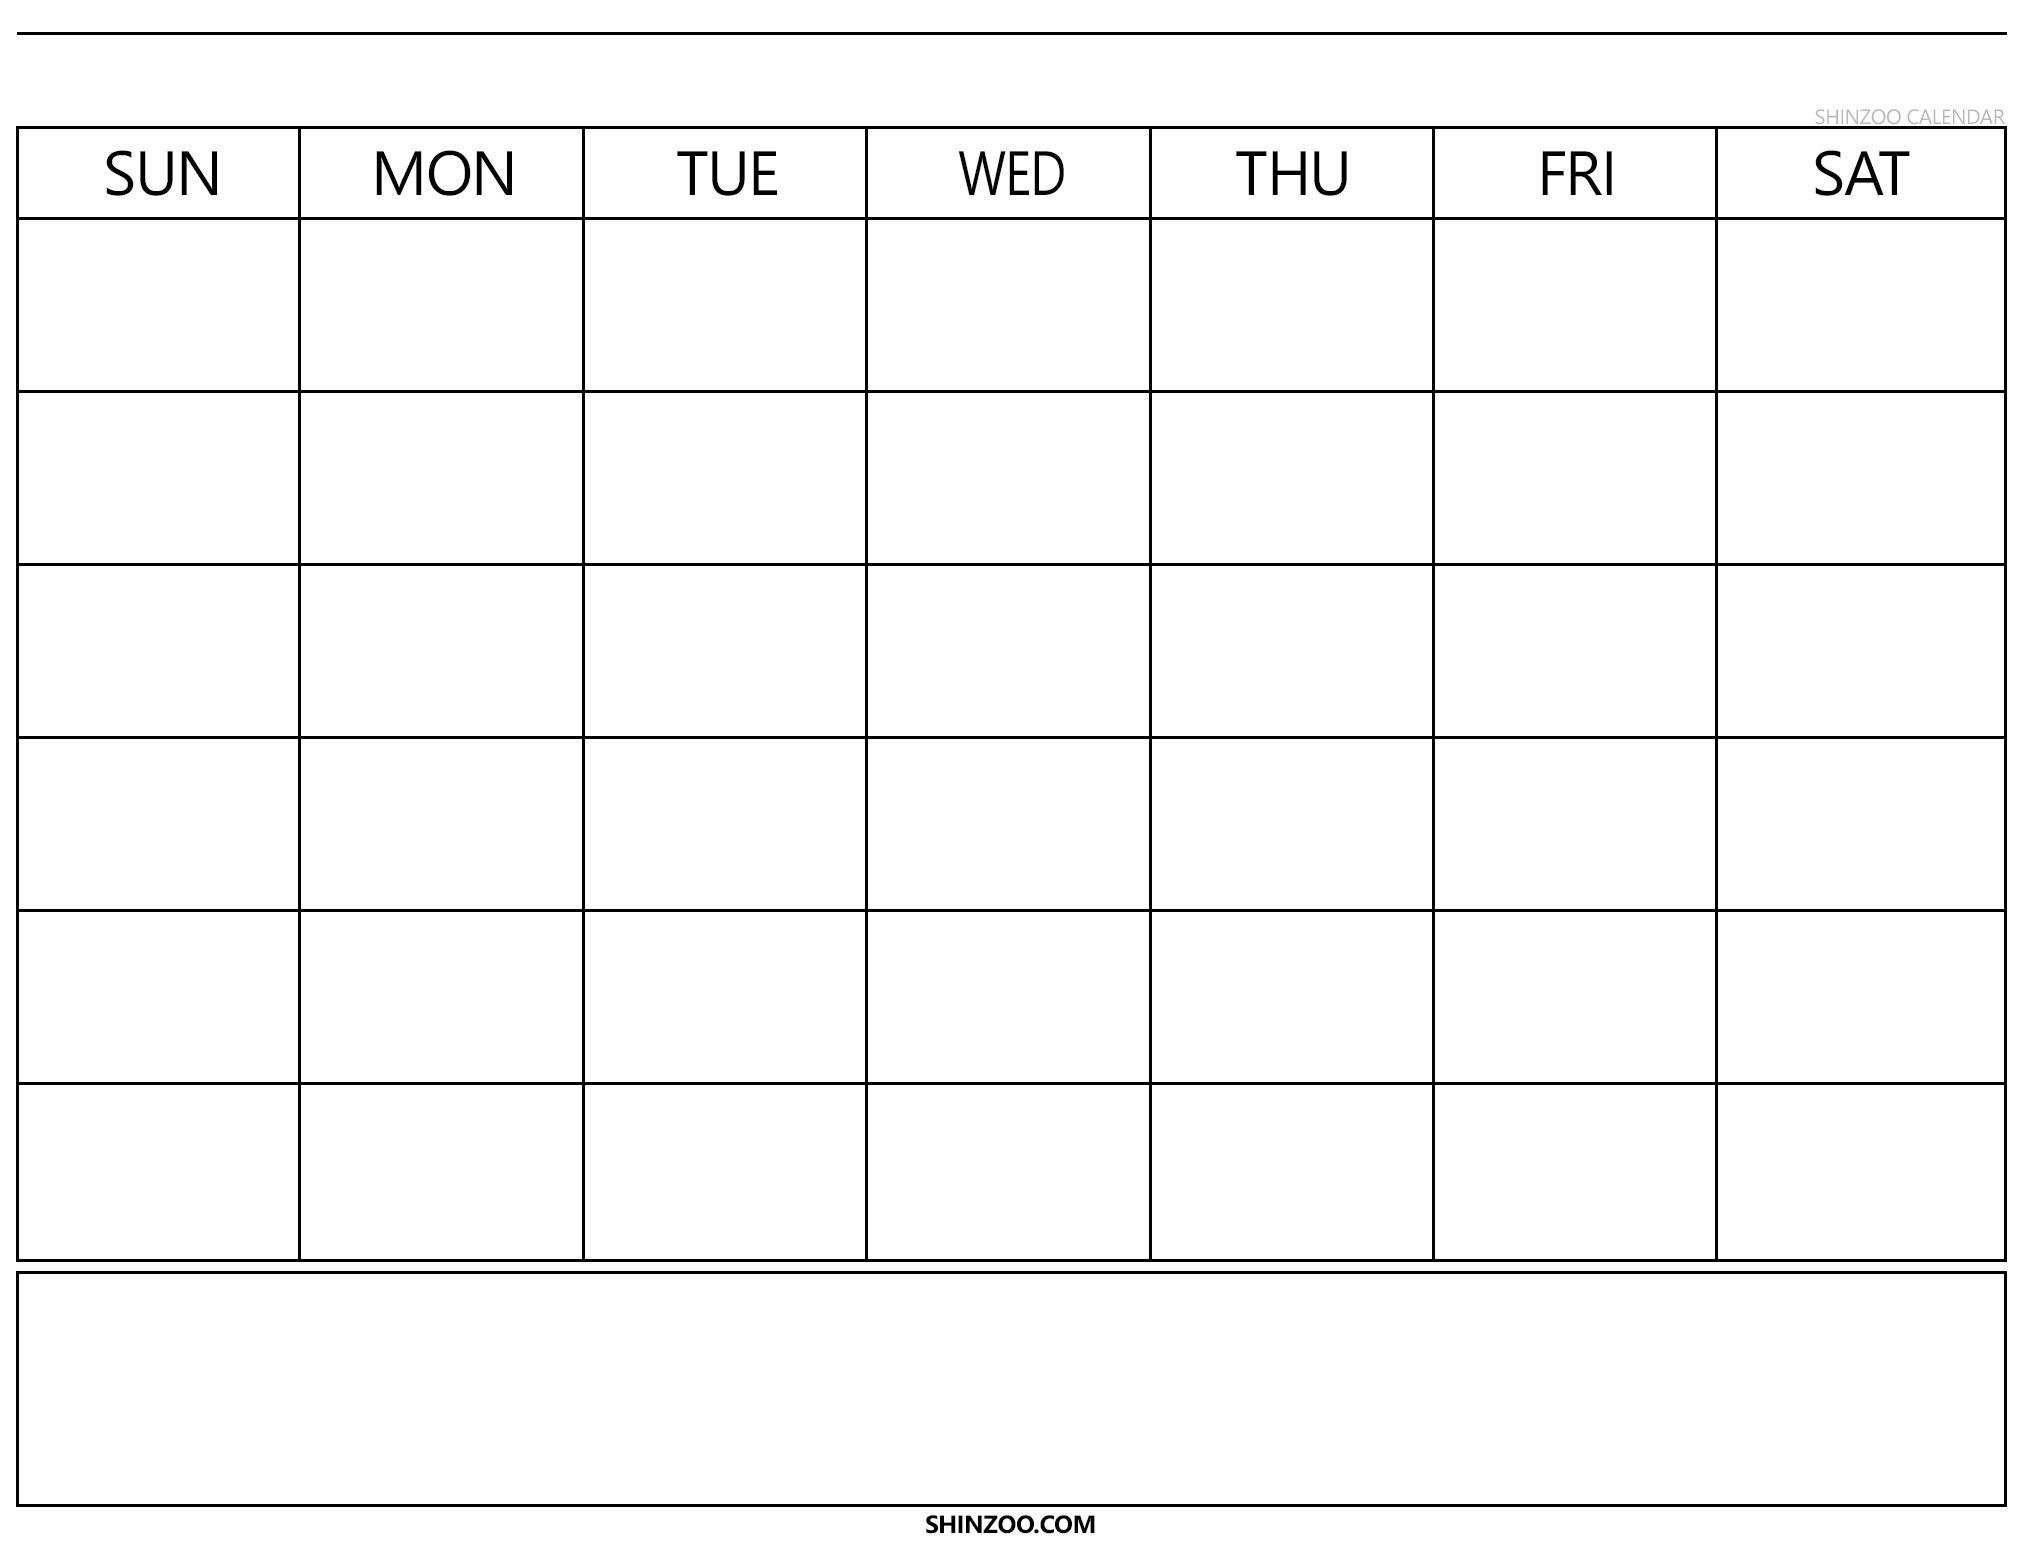 Blank Calendar 2019 2020 To Fill In - Calendar Inspiration Calendars To Fill In And Print